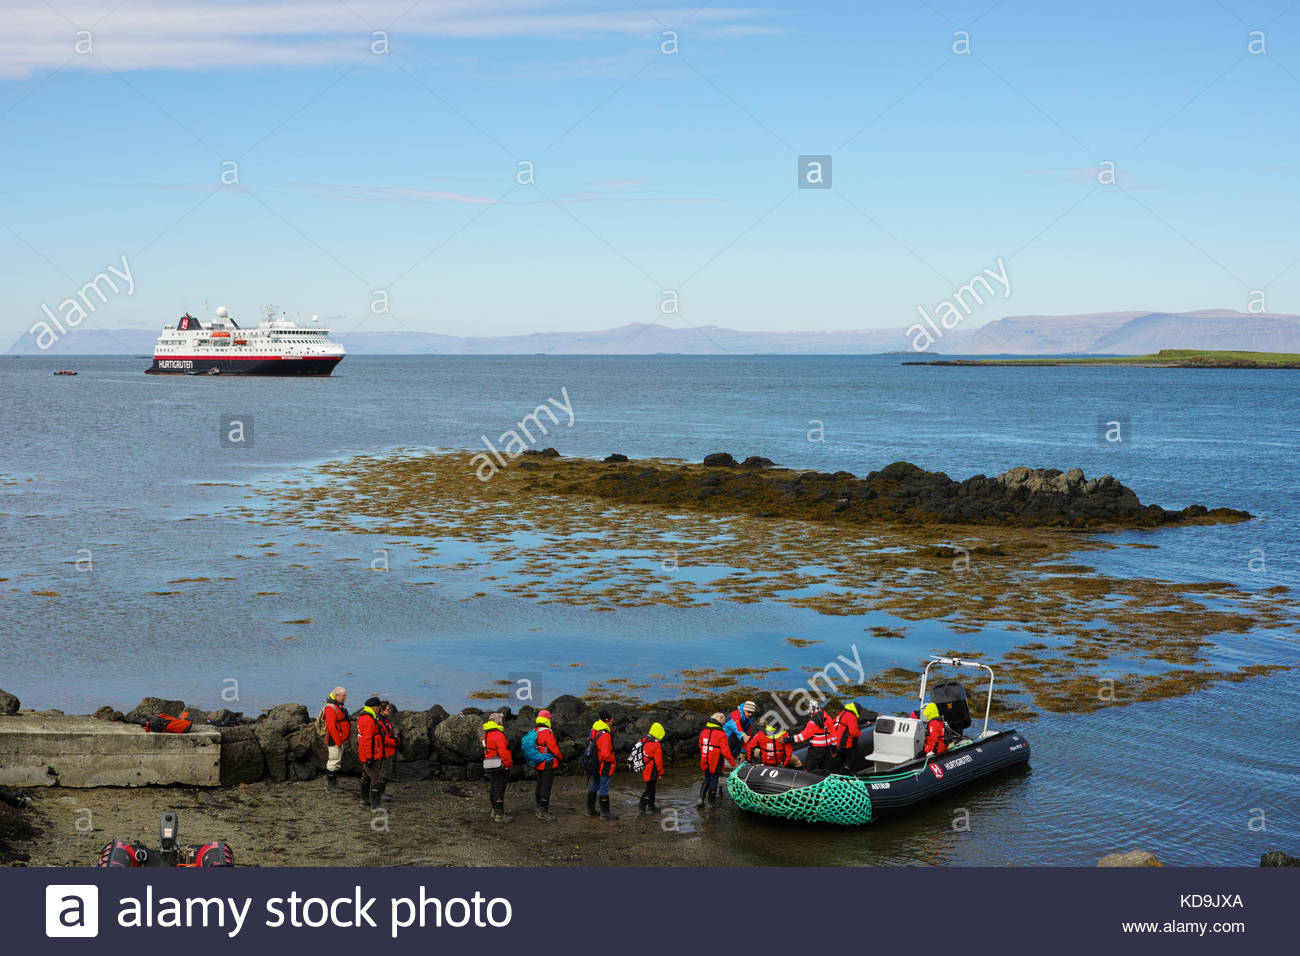 people-boarding-the-tender-boat-to-return-from-flatey-island-to-the-KD9JXA.jpg